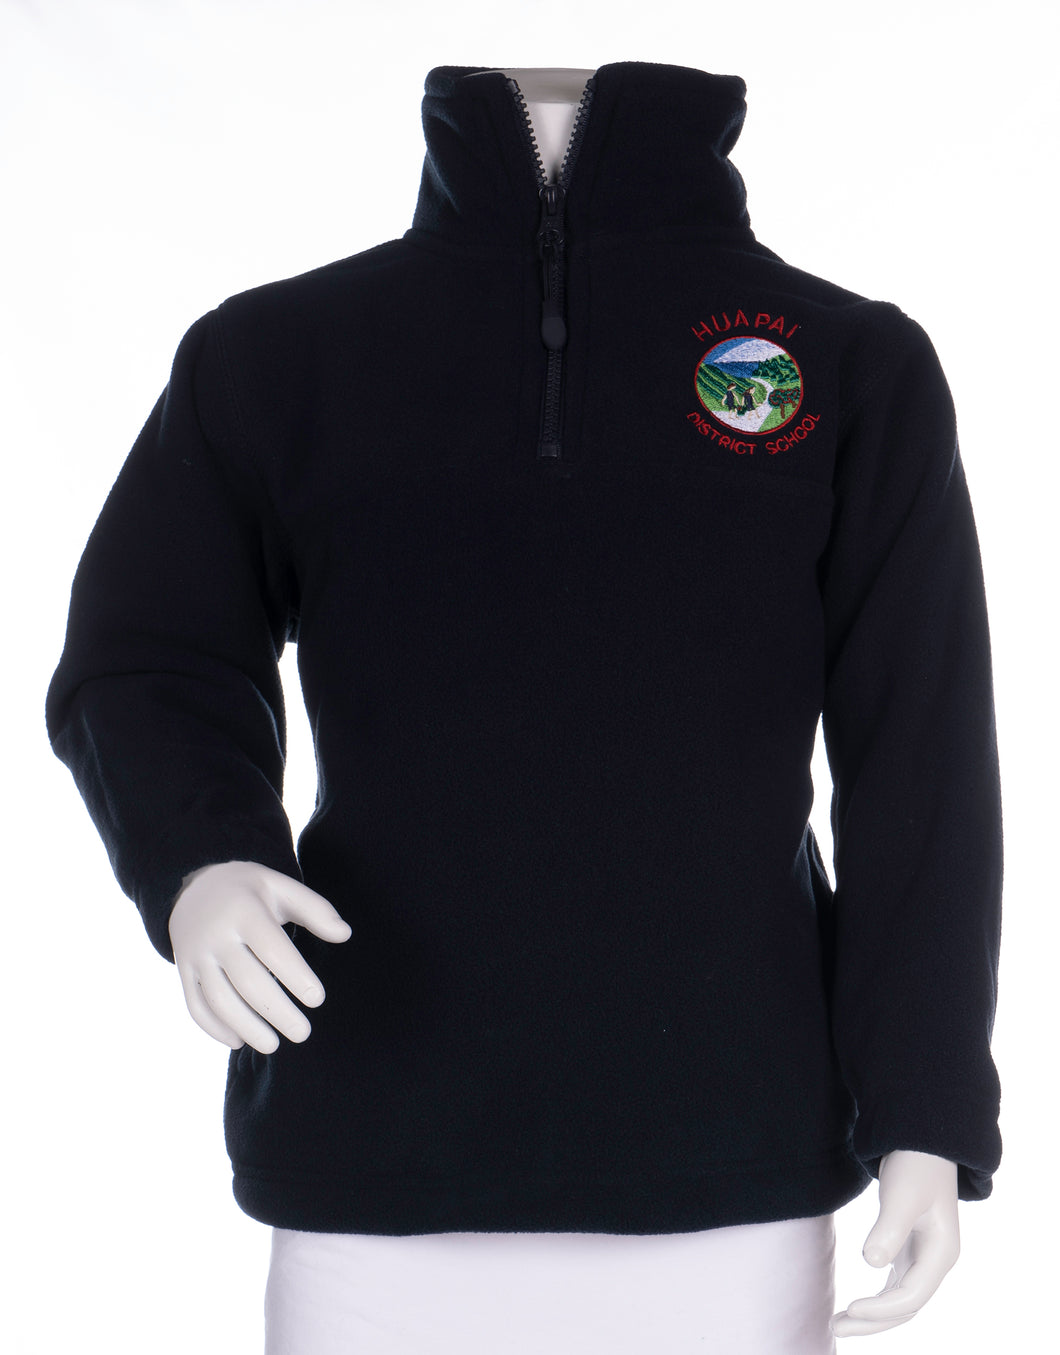 Huapai District School - Polar Fleece Jumper